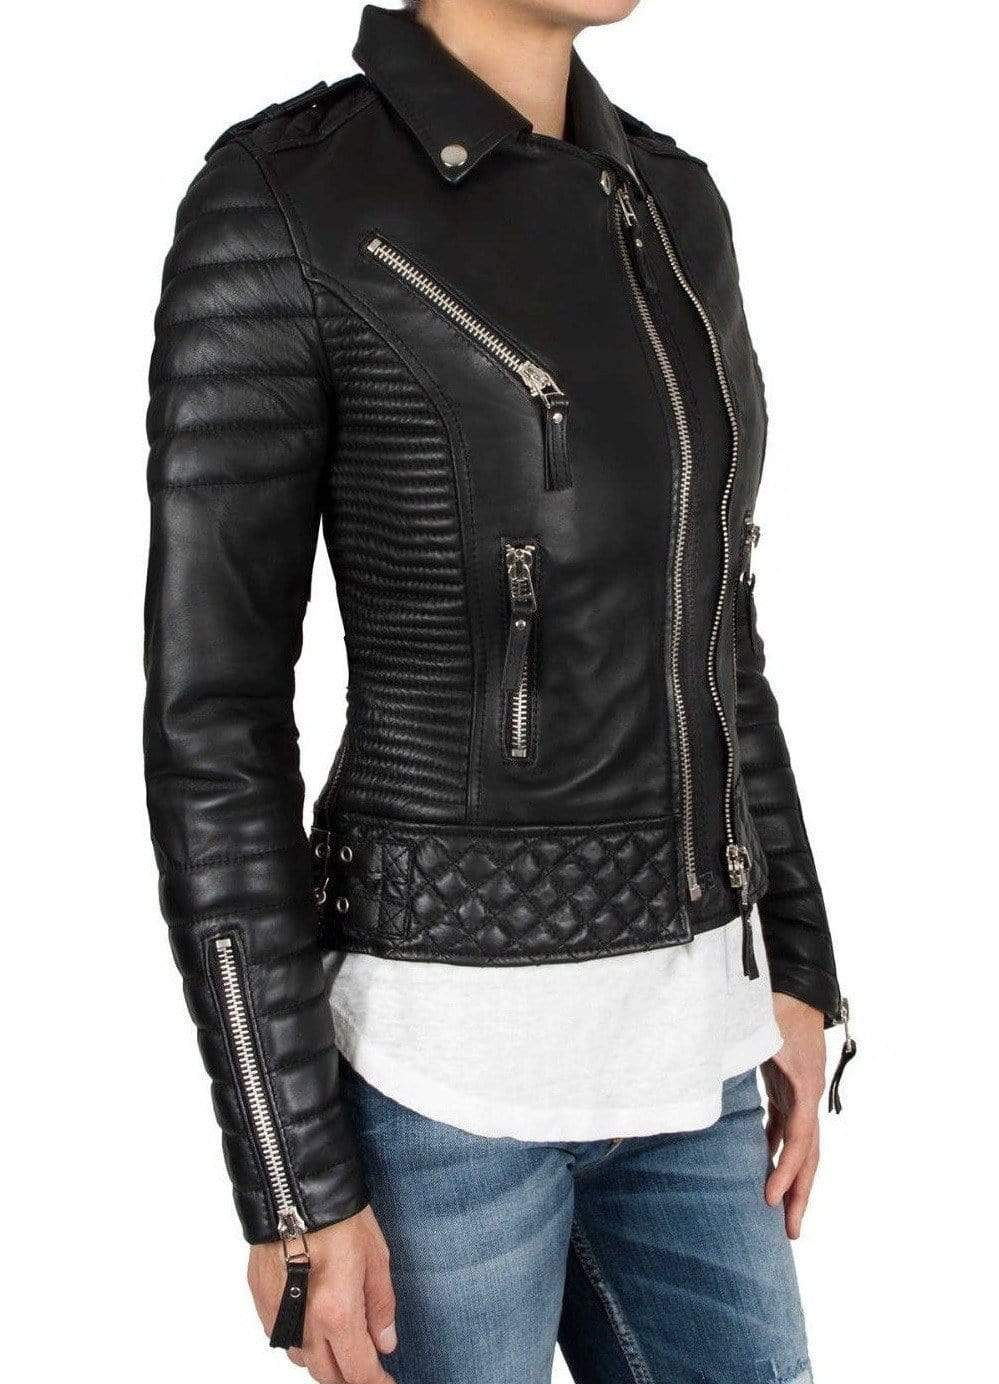 Handmade Leather Skin Women Black Padded Brando Leather Jacket - leathersguru